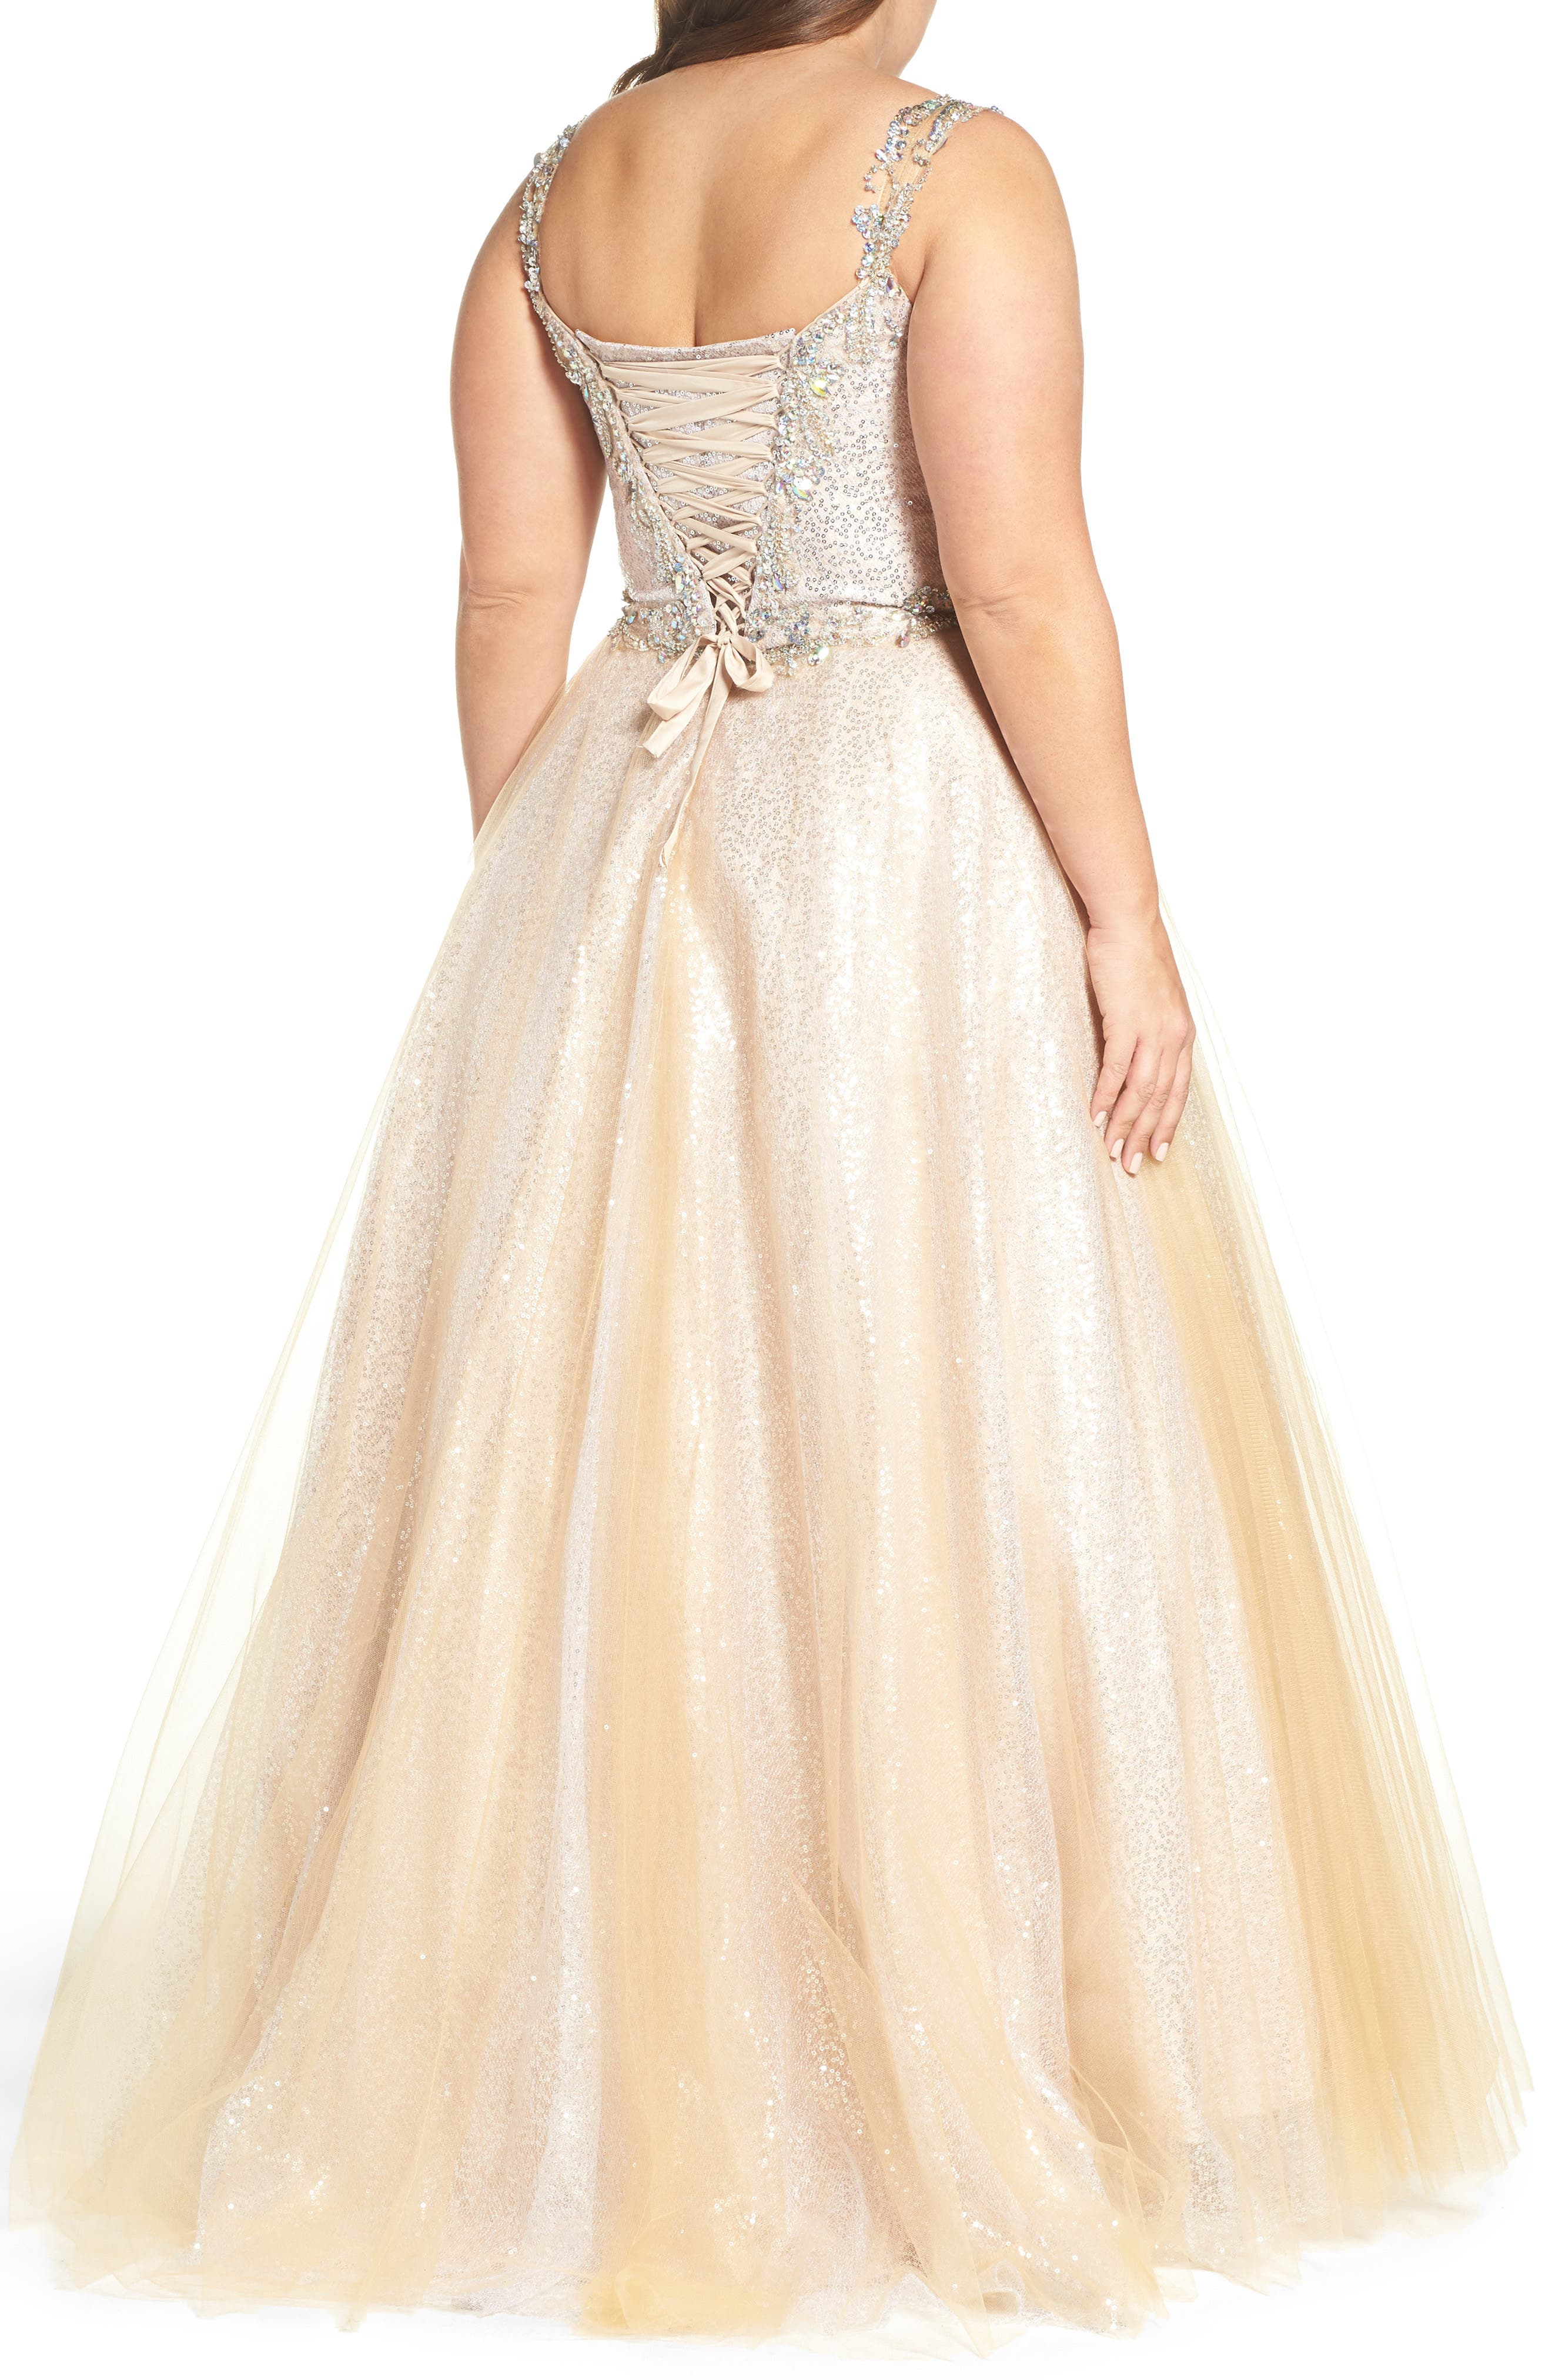 Beaded Tulle Ballgown,                             Alternate thumbnail 2, color,                             Nude/ Silver